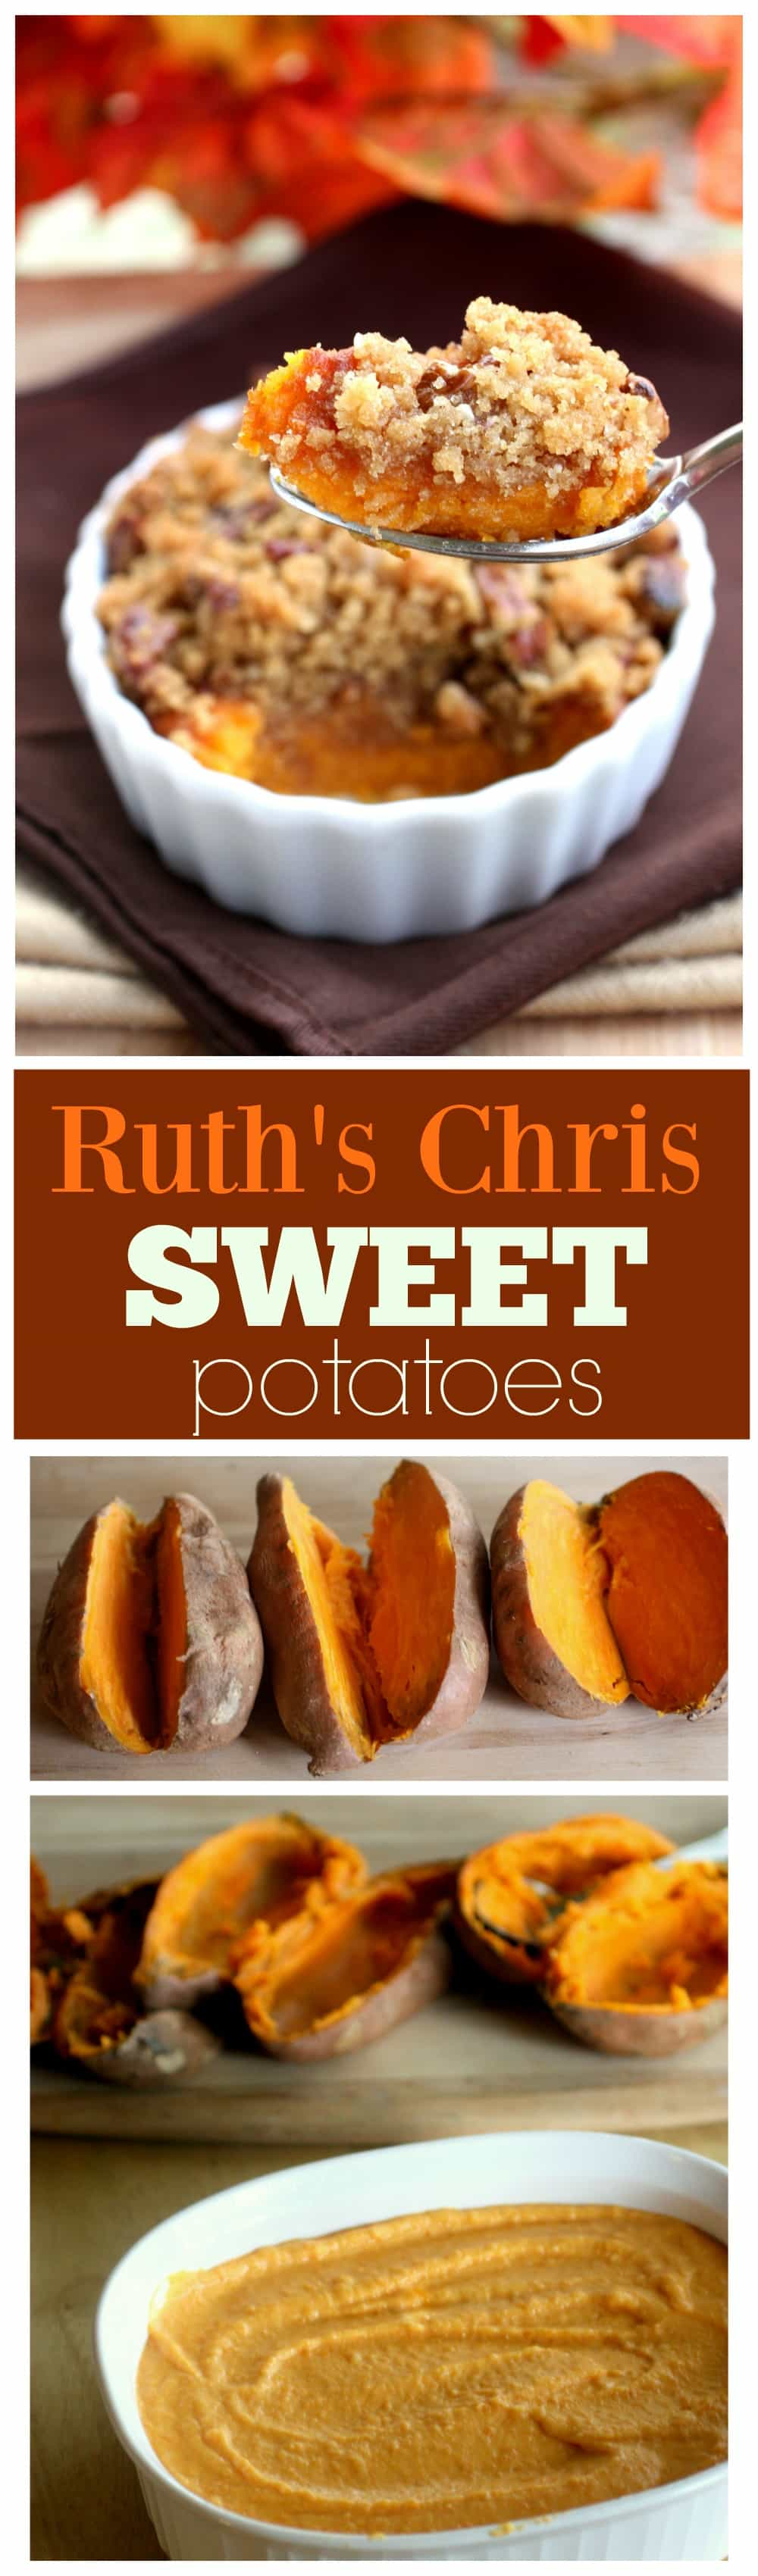 These Sweet Potatoes are creamy and topped with a brown sugar pecan crust just like they are at Ruth's Chris Steakhouse. One of our family favorites, this will turn even non-sweet potato lovers into avid fans. #sweet #potato #casserole #ruthschris #thanksgiving #side